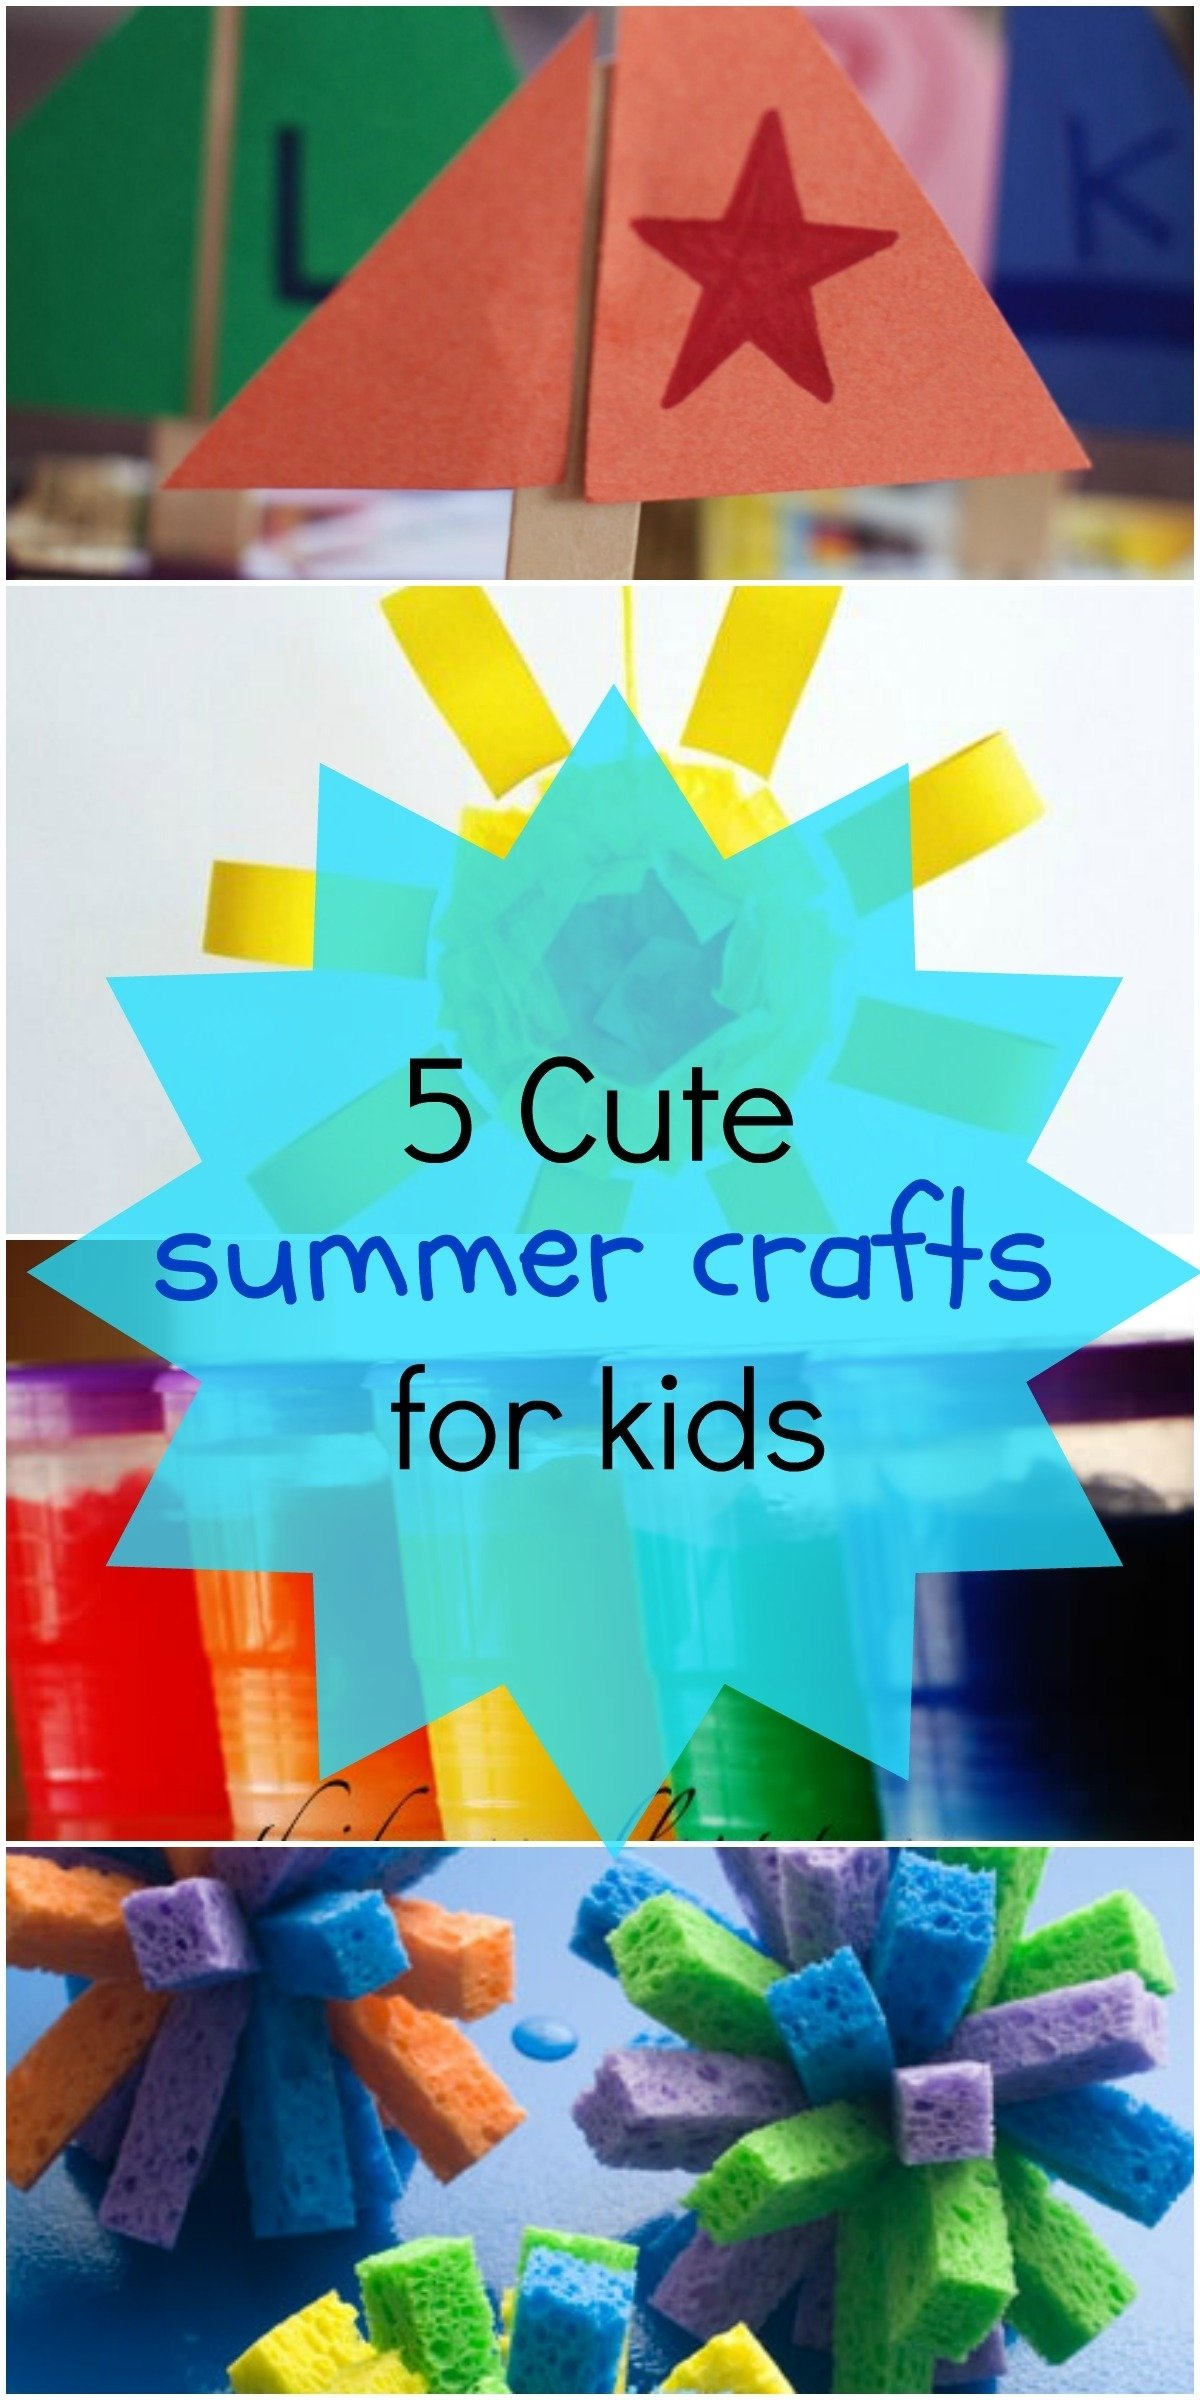 10 Nice Cute Arts And Crafts Ideas 5 fun summer crafts for kids love these art project ideas 1